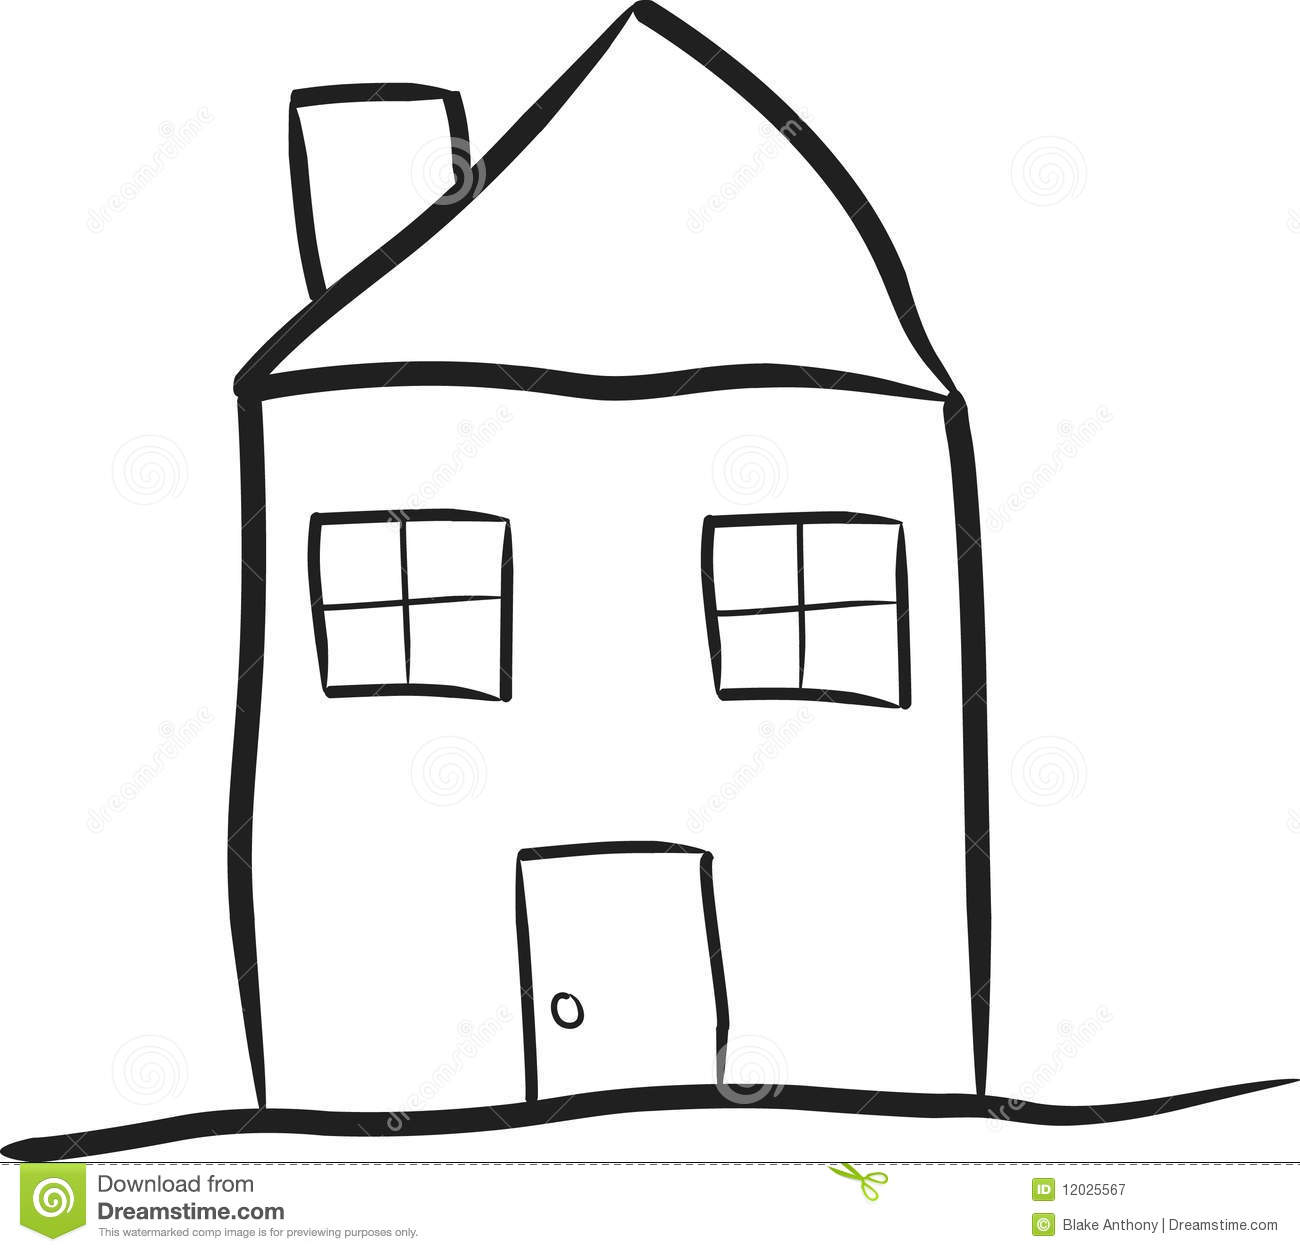 Line Drawing House Image : Modest house royalty free stock photography image